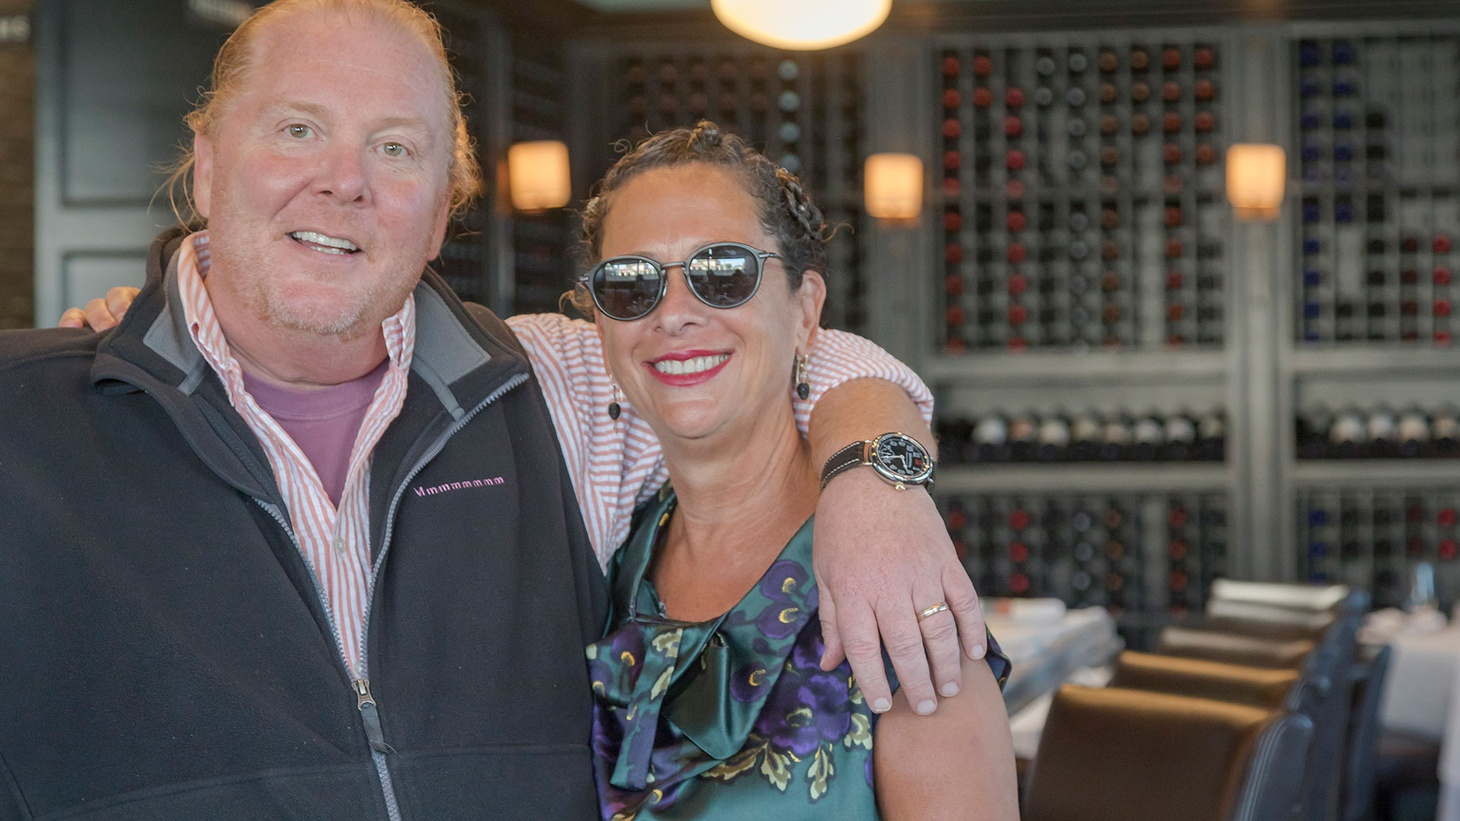 The dynamic duo of Nancy Silverton and Mario Batali take us back to the moment they met, tell us what inspired each of their new cookbooks and reveal their plans to bring Eataly to LA. Jennifer Grayson, author of Unlatched, weighs in on the breastfeeding-versus-formula debate, and Jonathan Gold revisits the iconic Dan Tana's in West Hollywood. Plus, a pitch for purchasing guavas at the market.